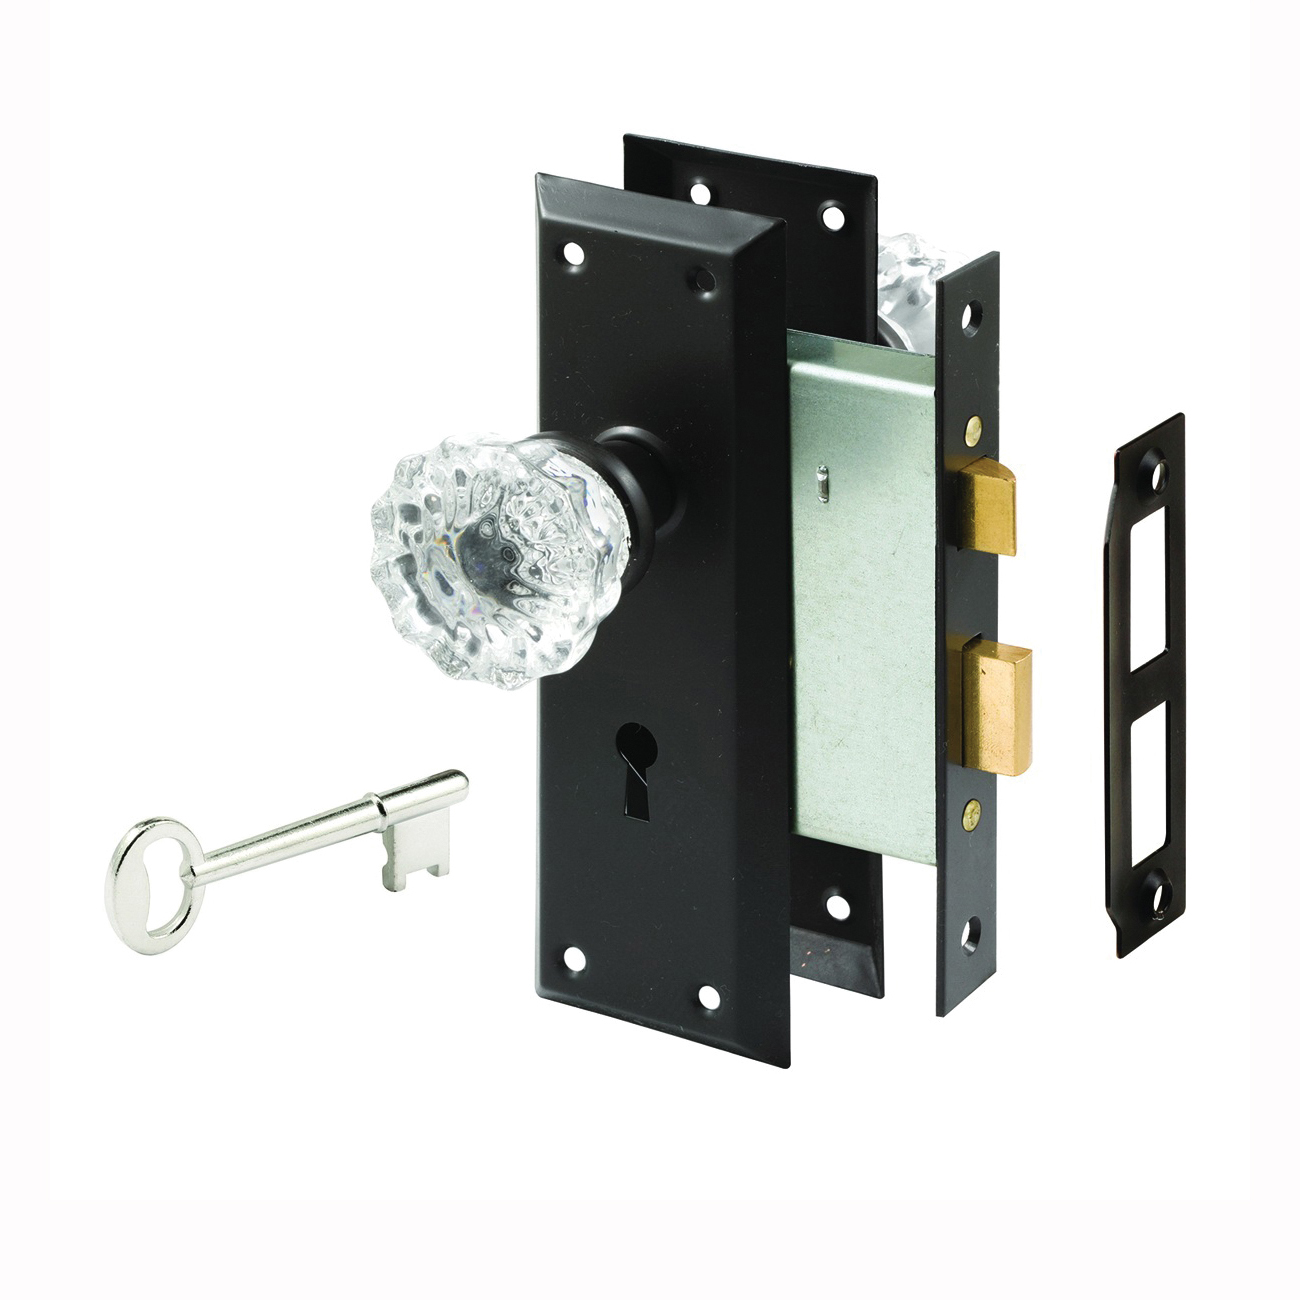 Picture of Defender Security E 2497 Door Lock Set, Keyed Key, Steel, Bronze, 2-3/8 in Backset, 1-1/4 in Thick Door